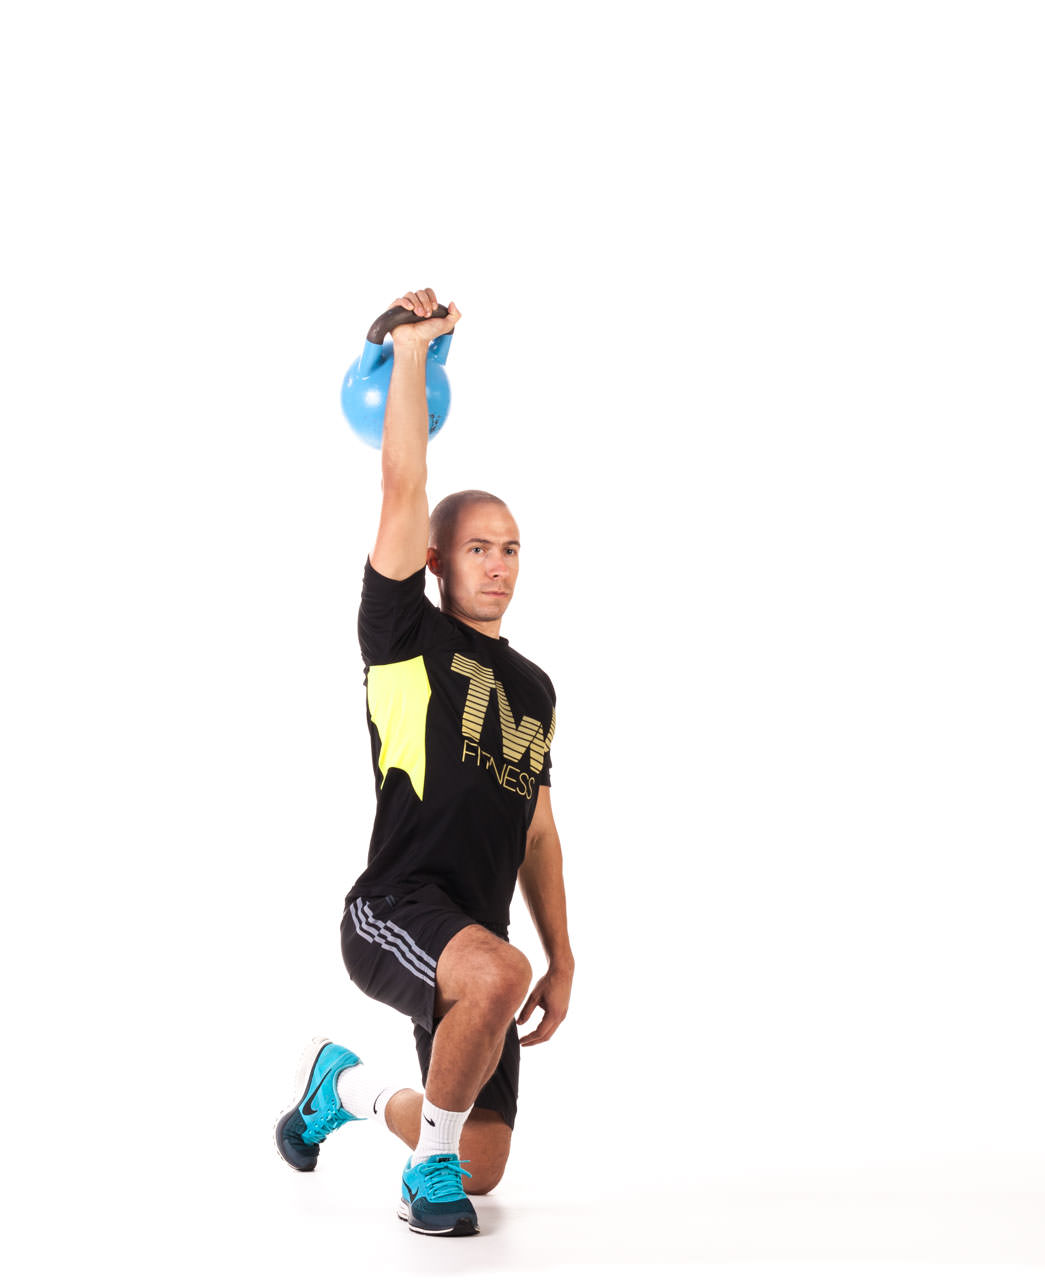 Kettlebell Turkish Get Up frame #8